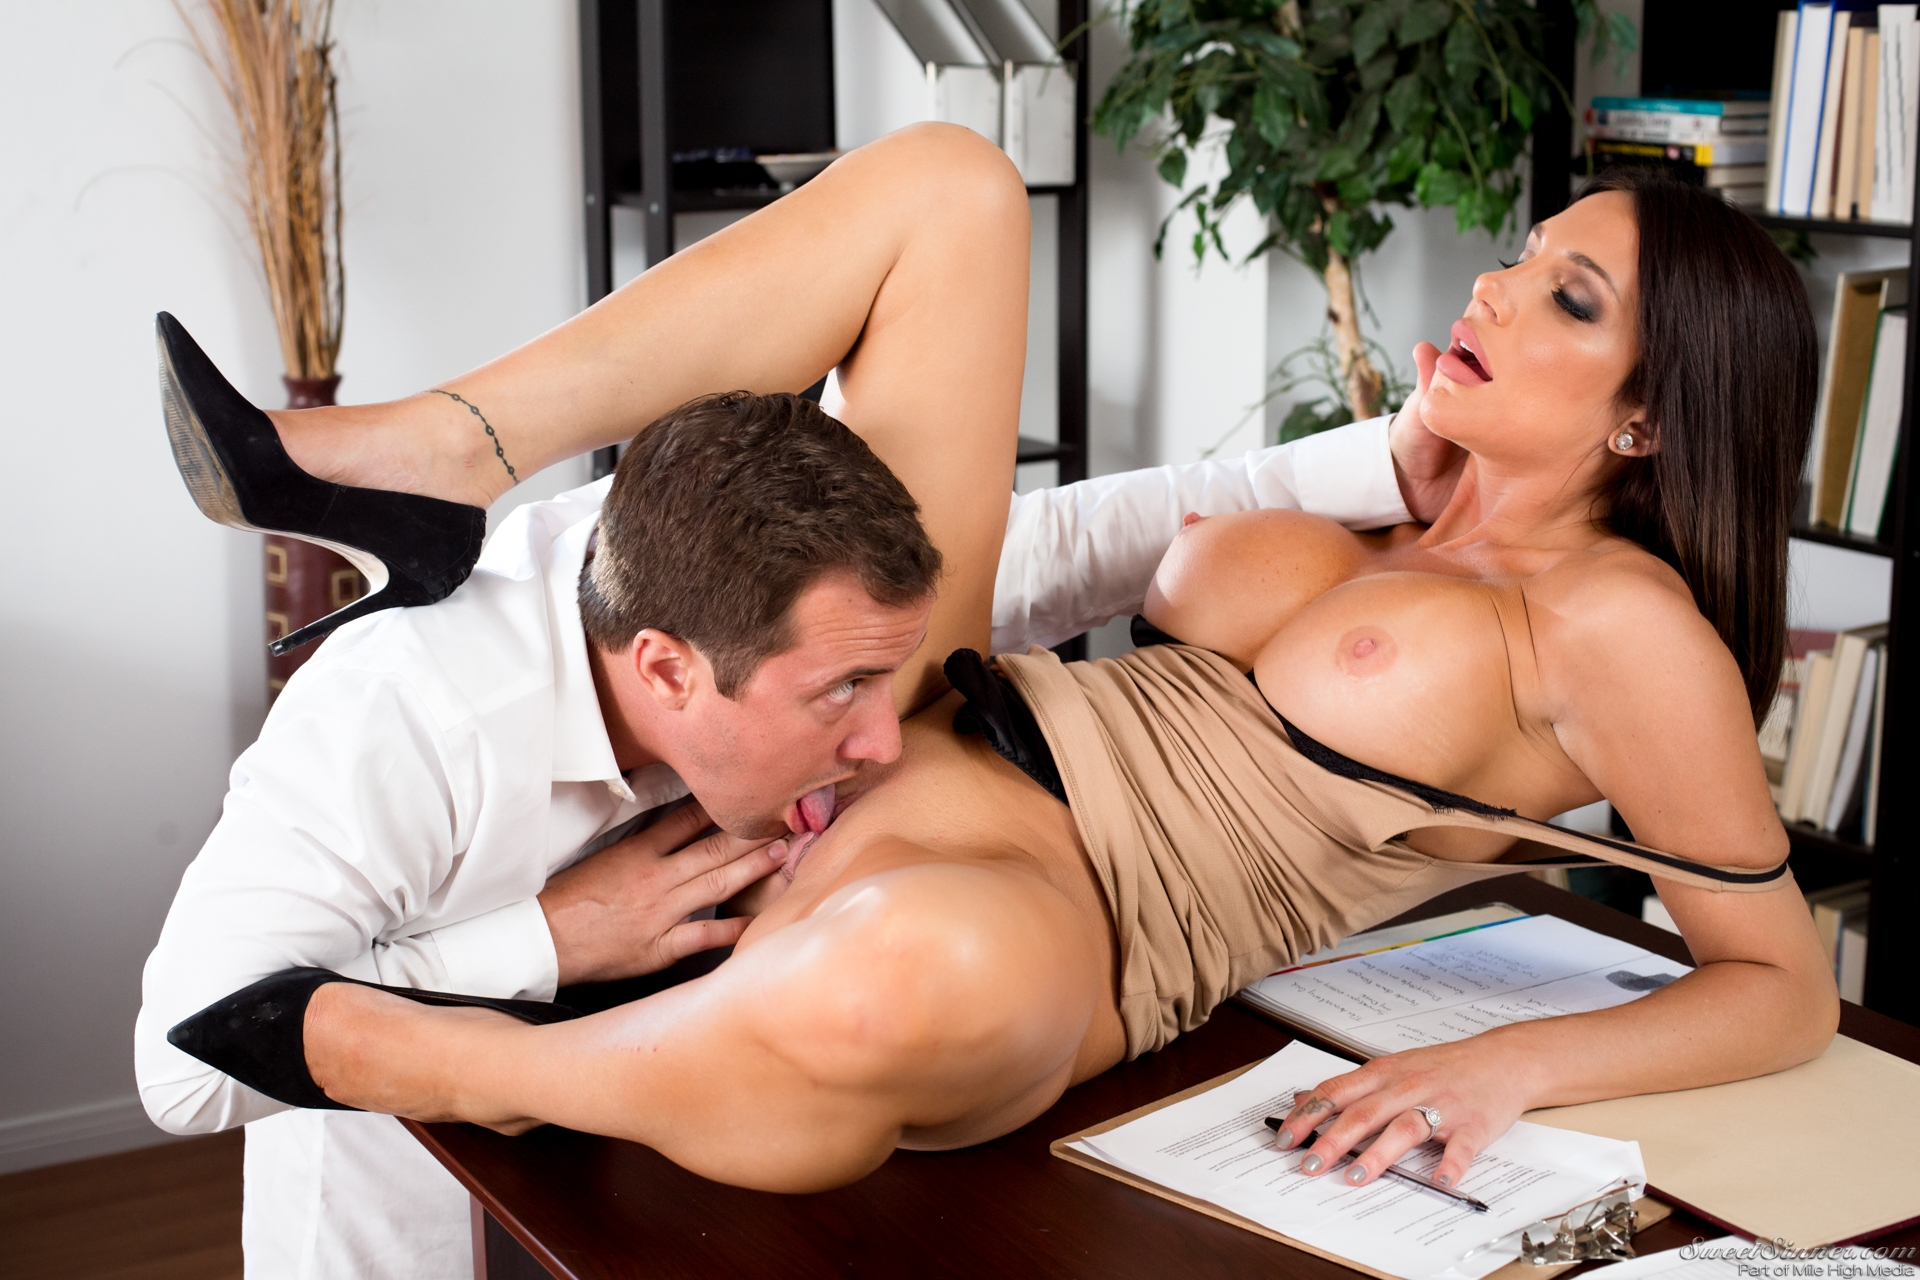 Business woman pussy licked, safe sex awareness